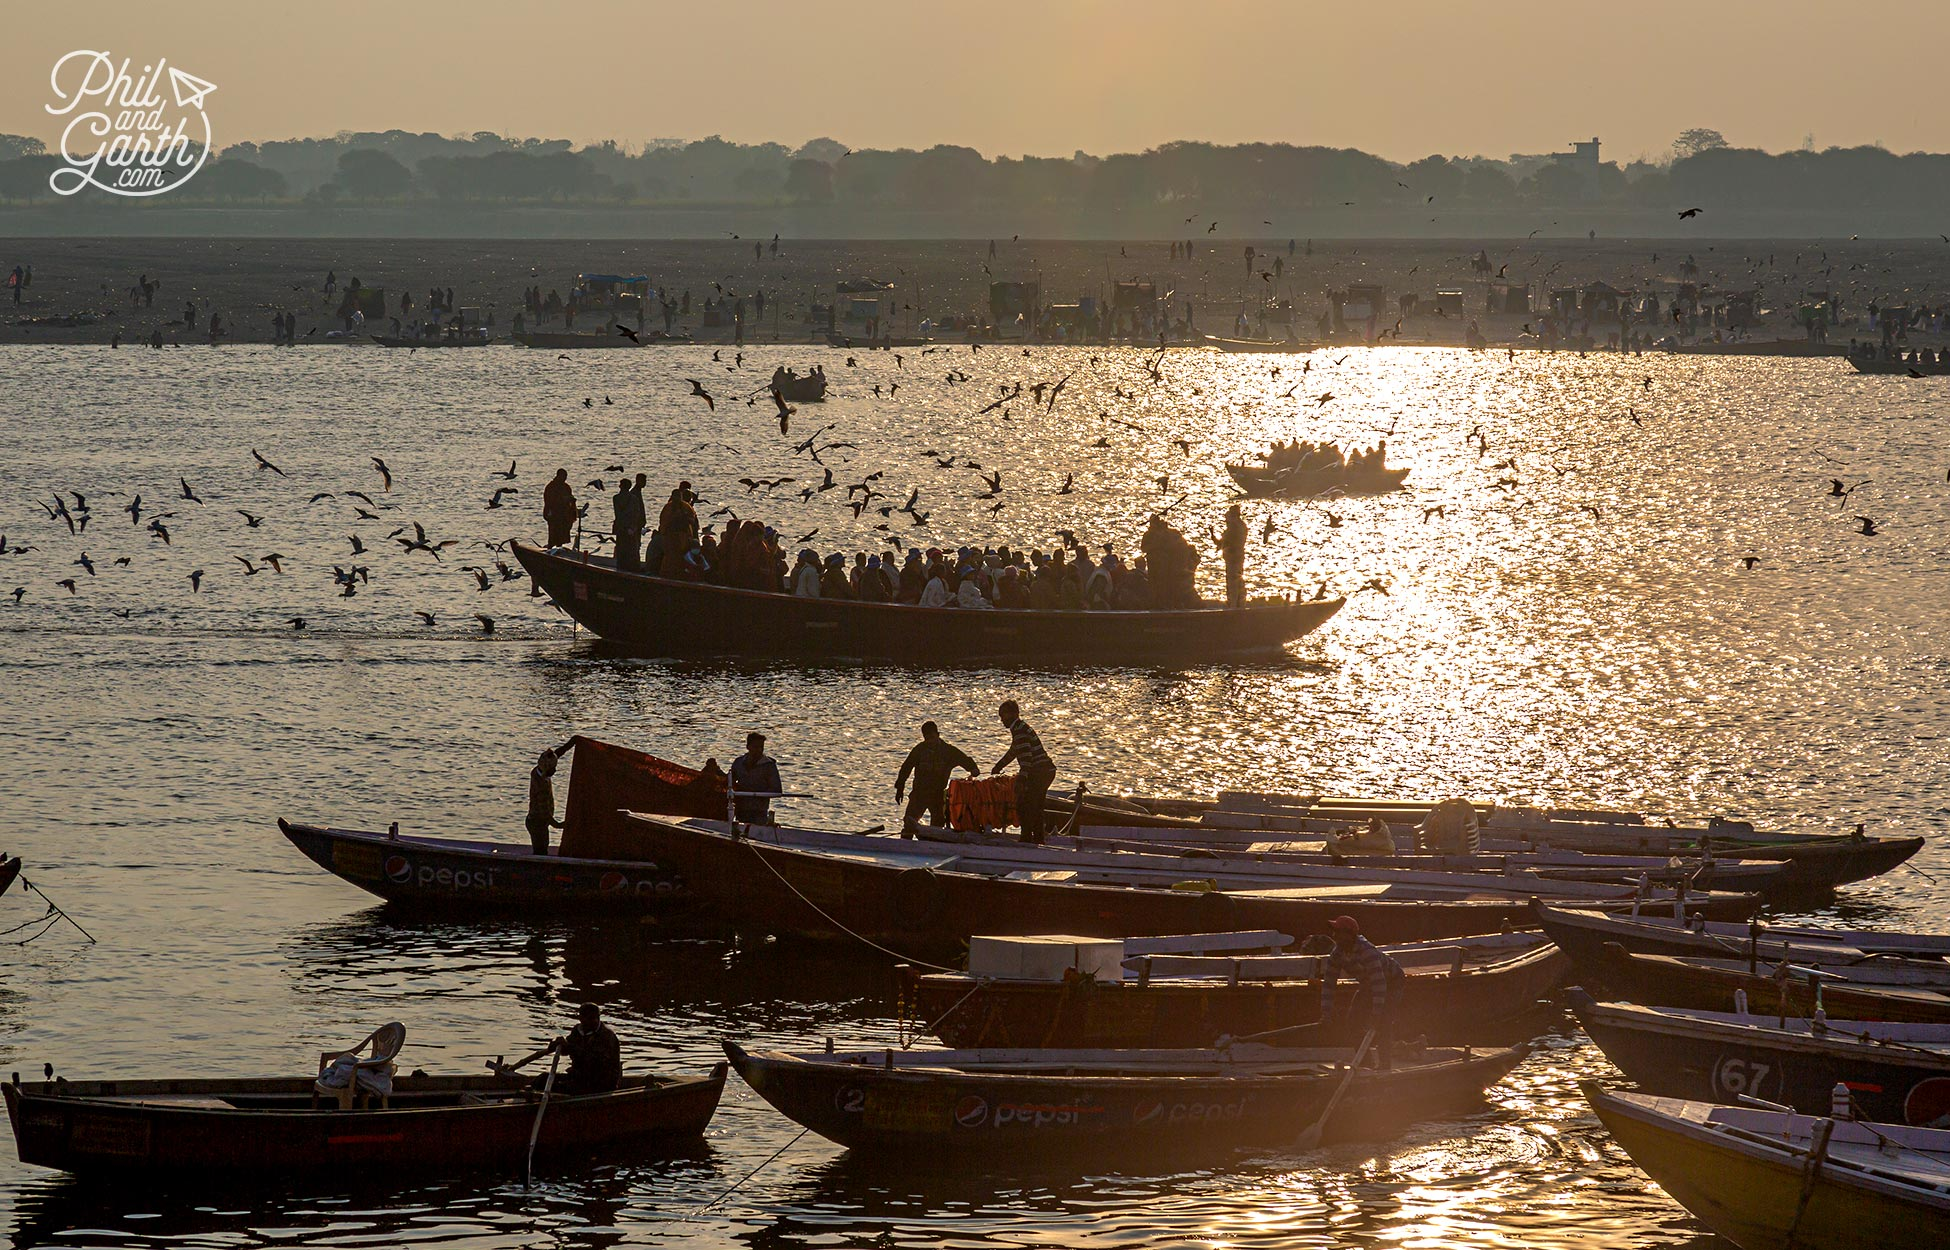 Atmospheric views of Varanasi from the River Ganges early morning